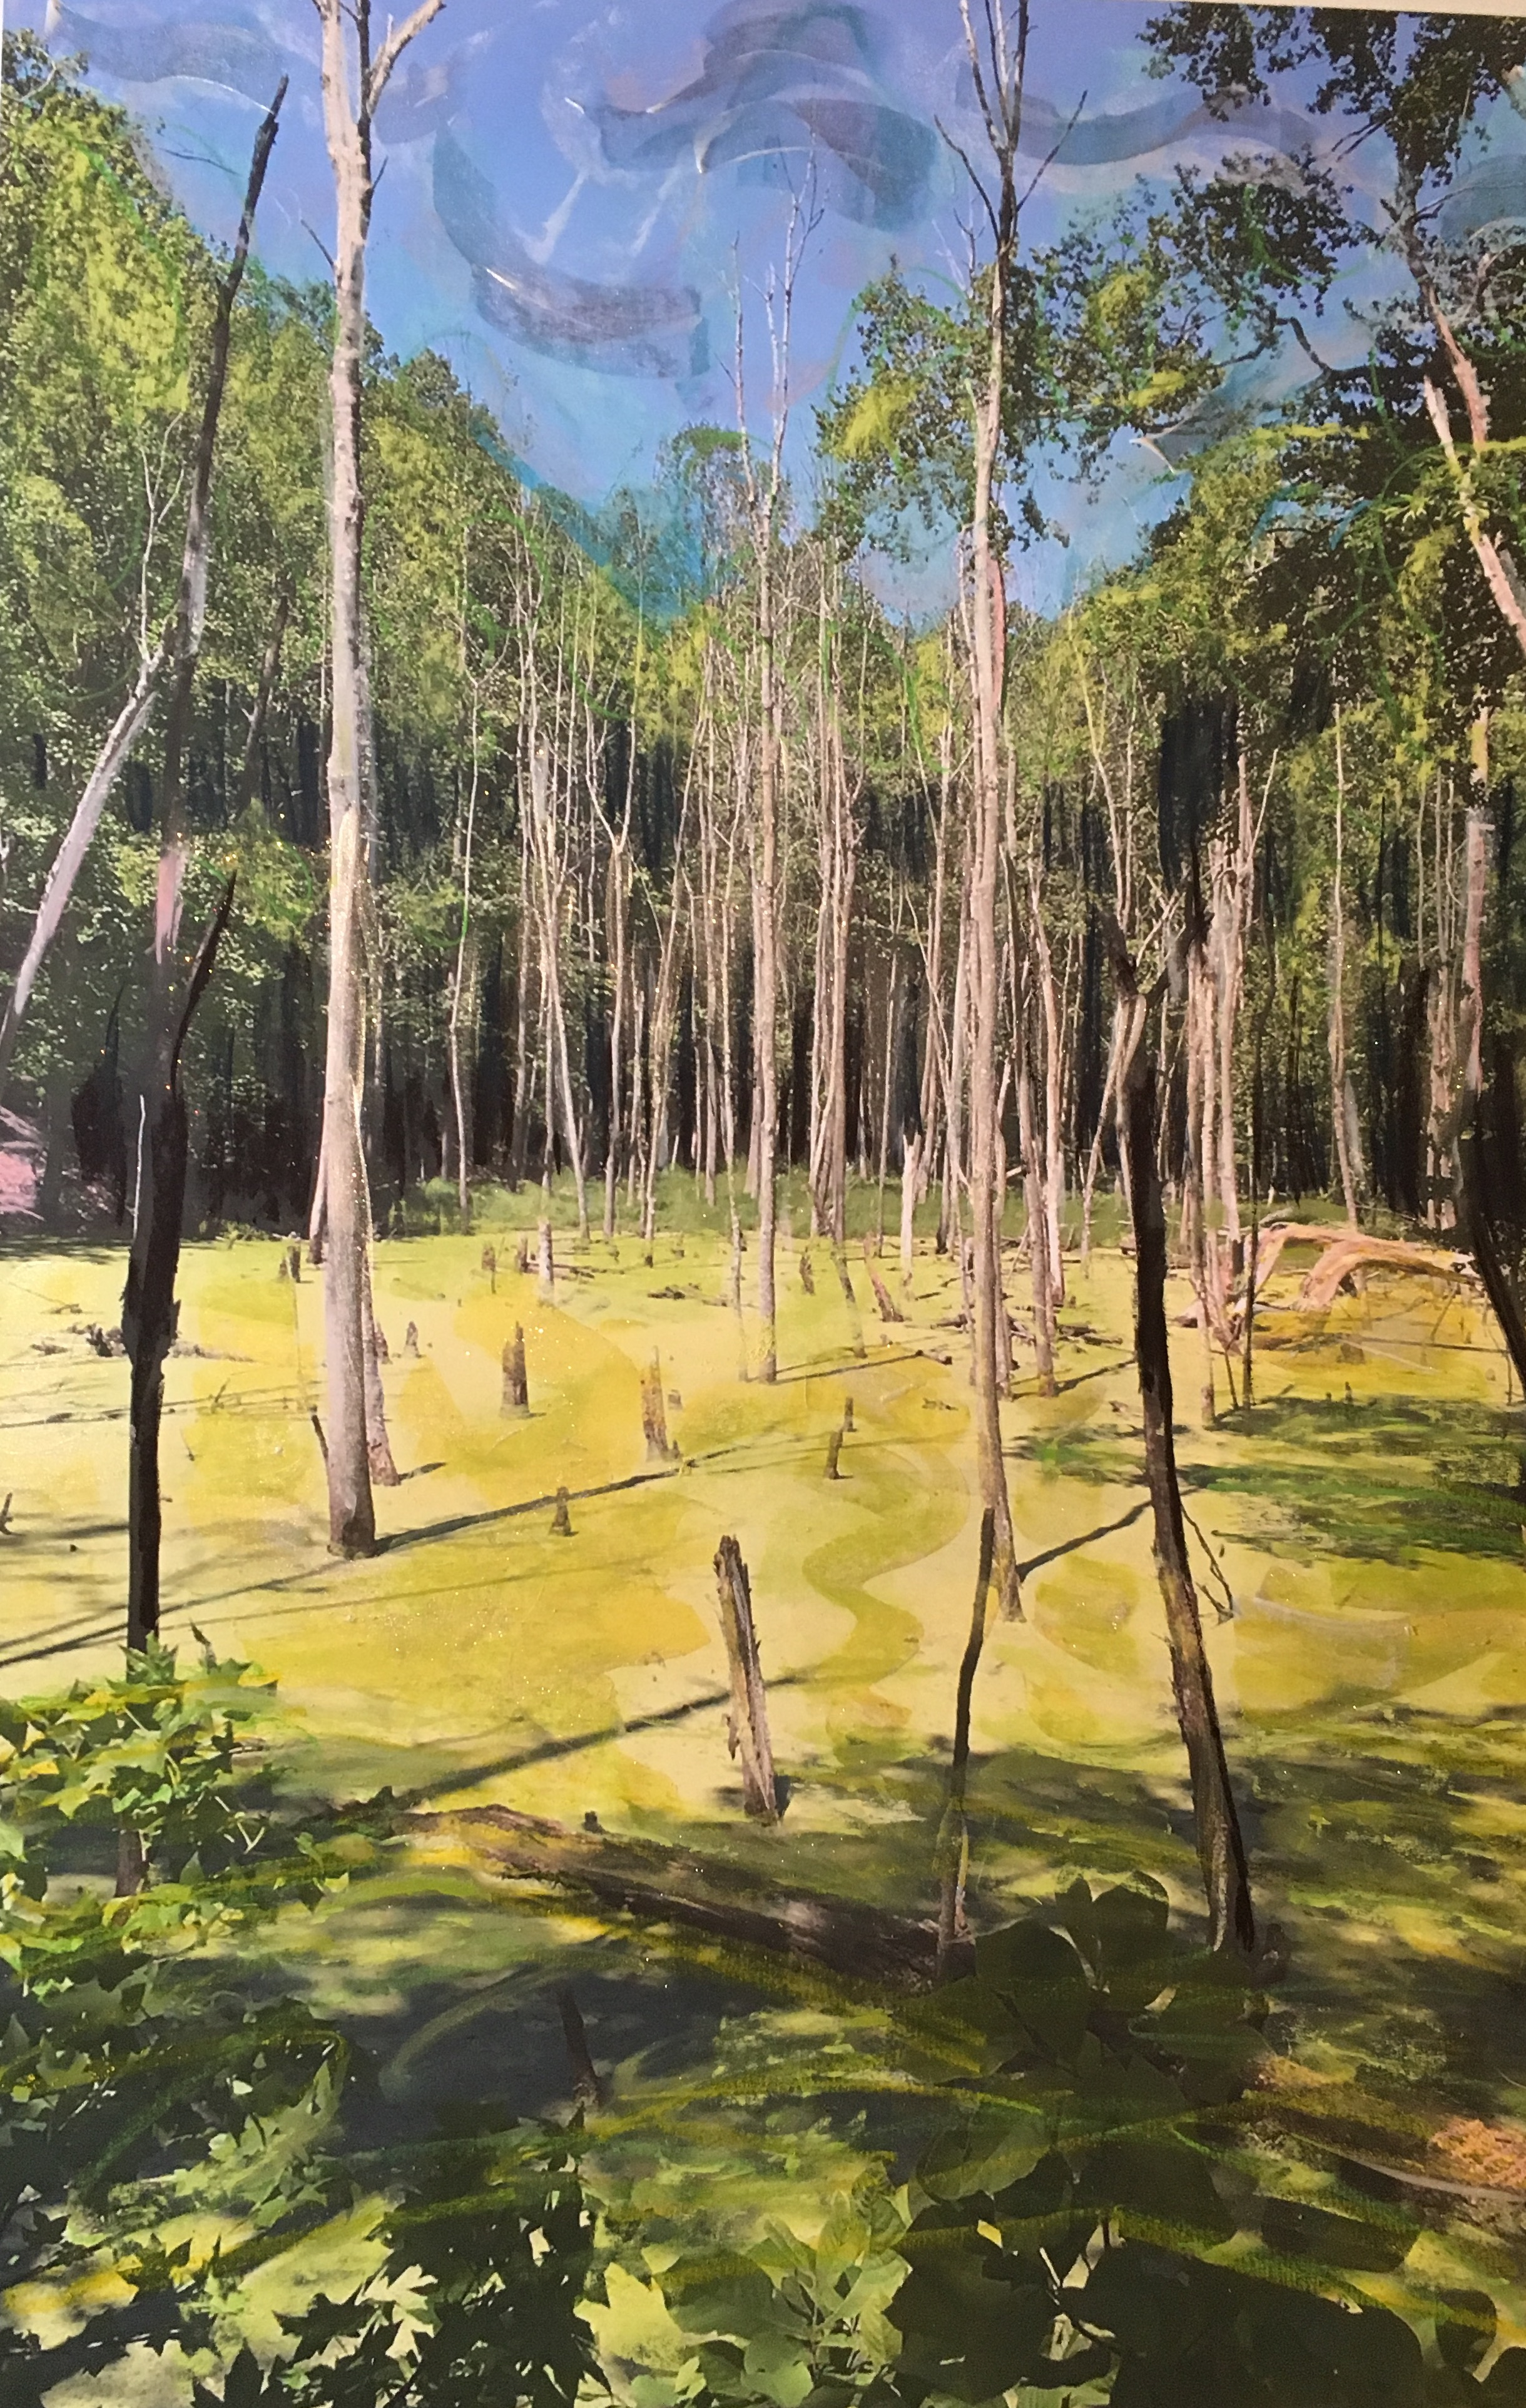 unusual bright green water in a swampy area